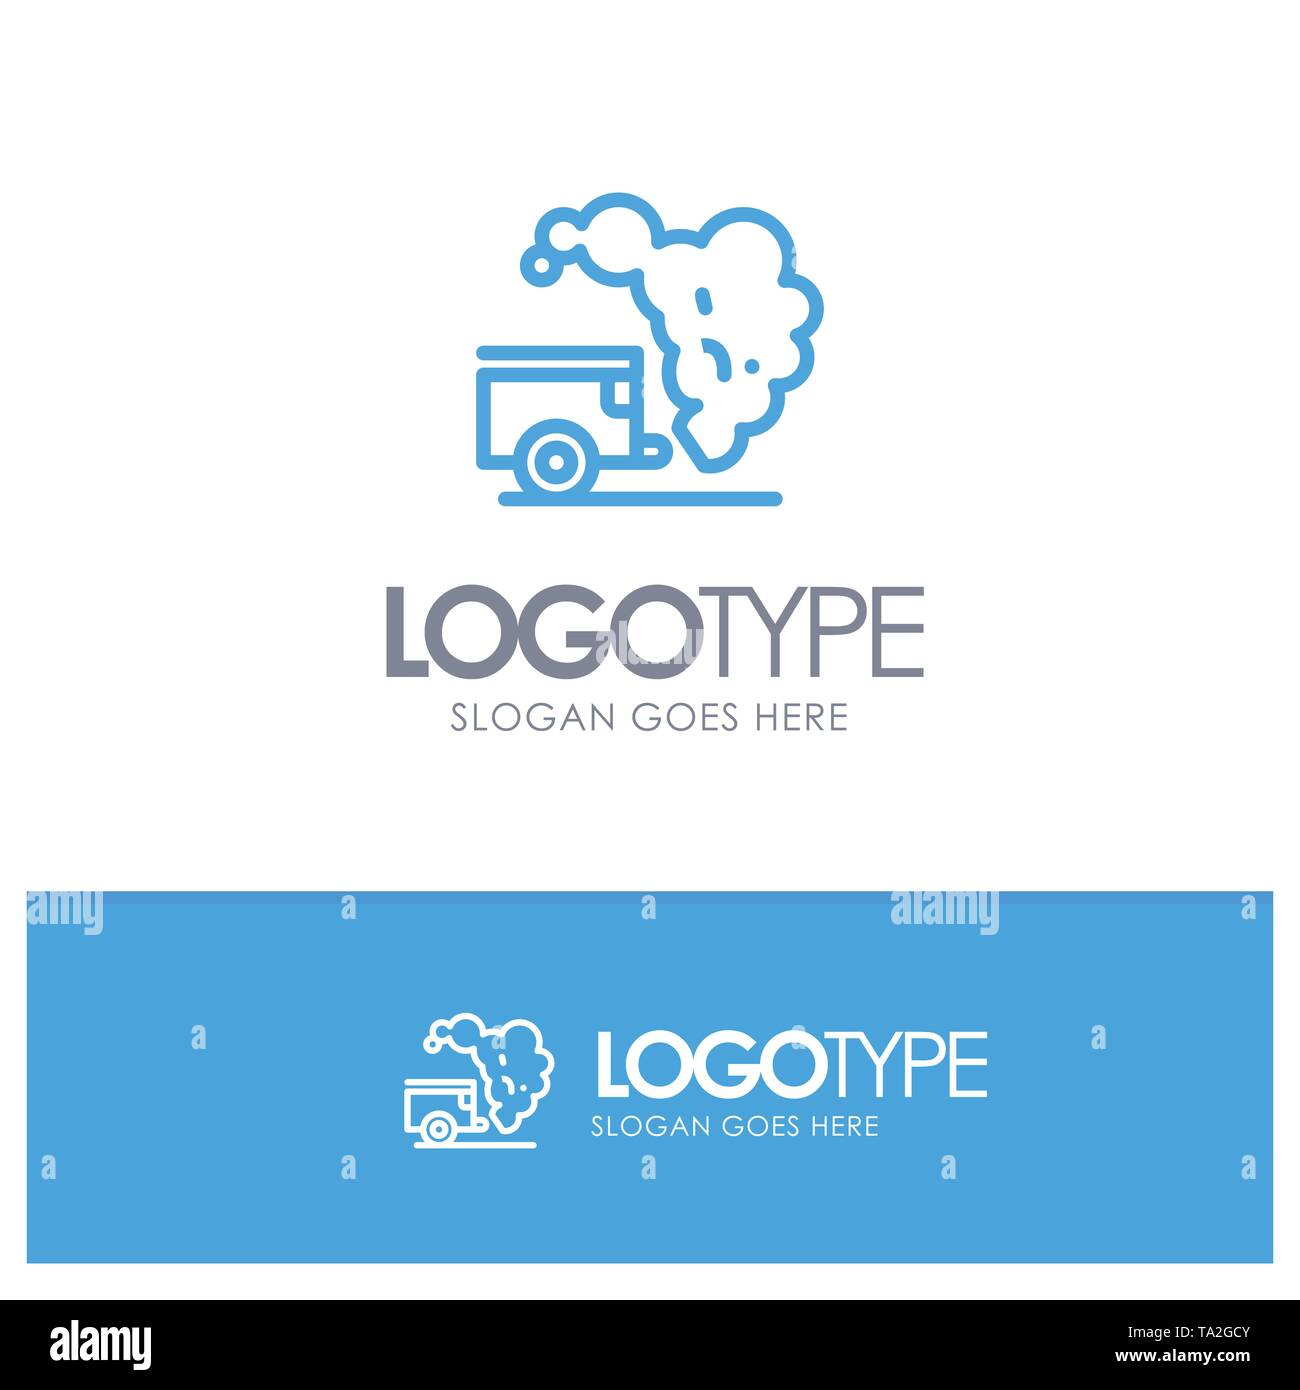 Dump, Environment, Garbage, Pollution Blue outLine Logo with place for tagline - Stock Image